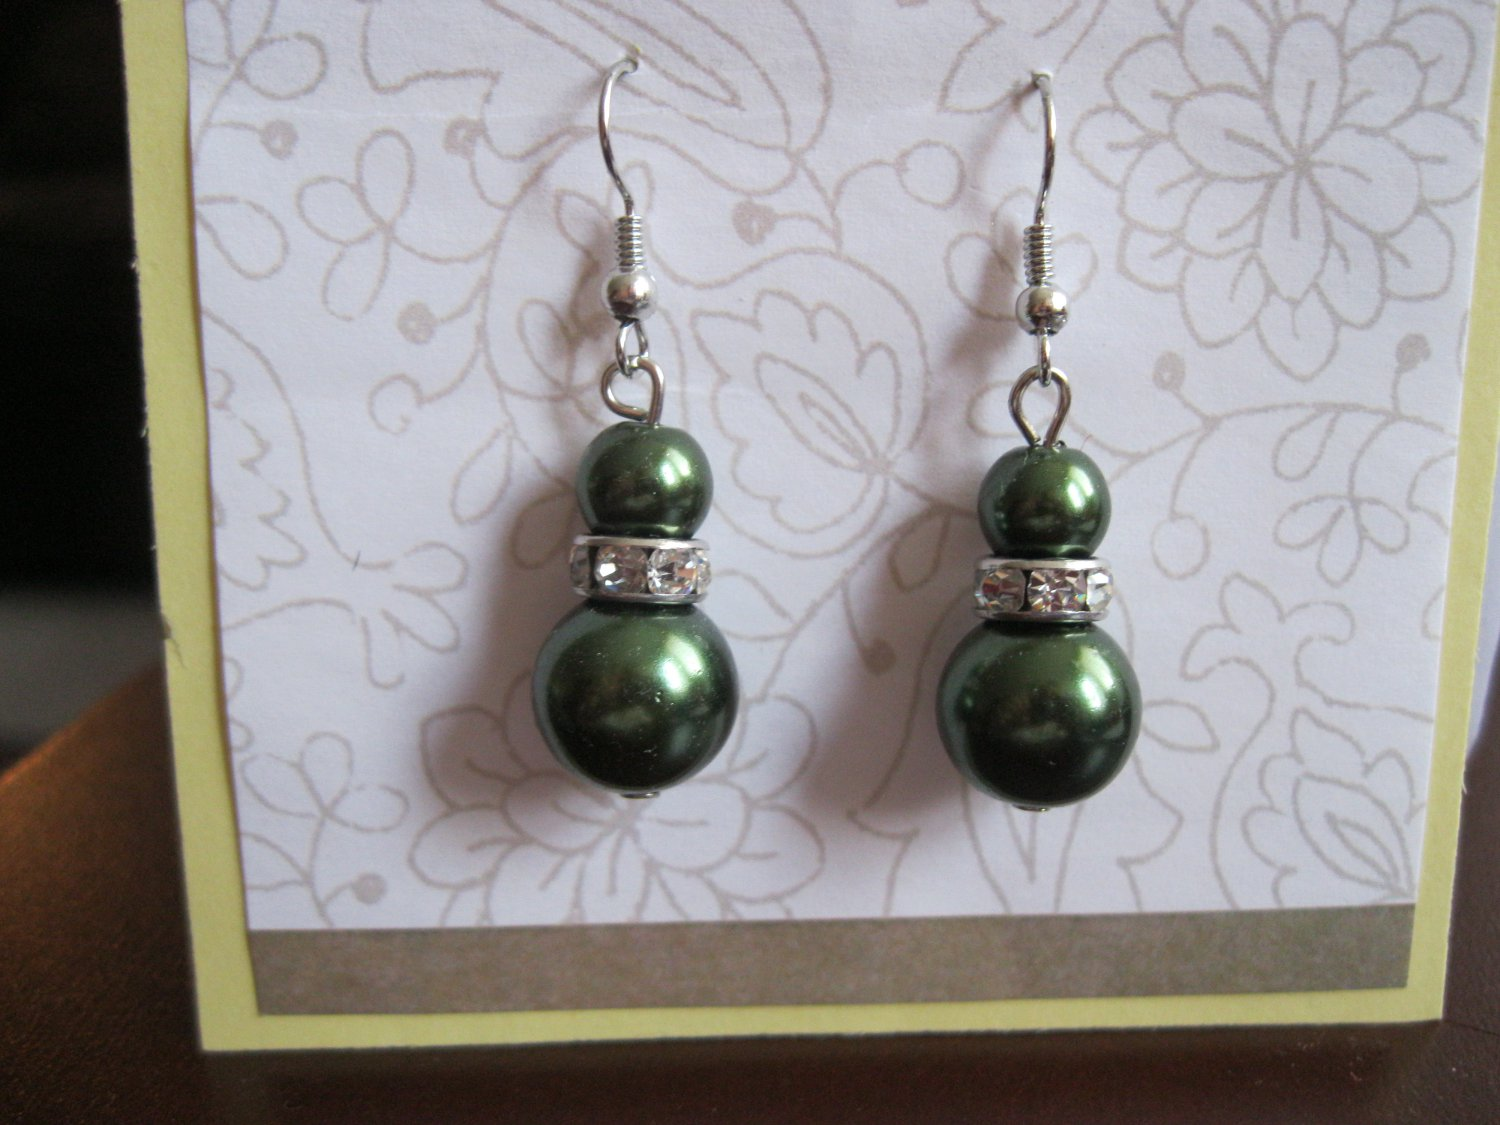 Green fashion drop faux pearl earrings with crystals